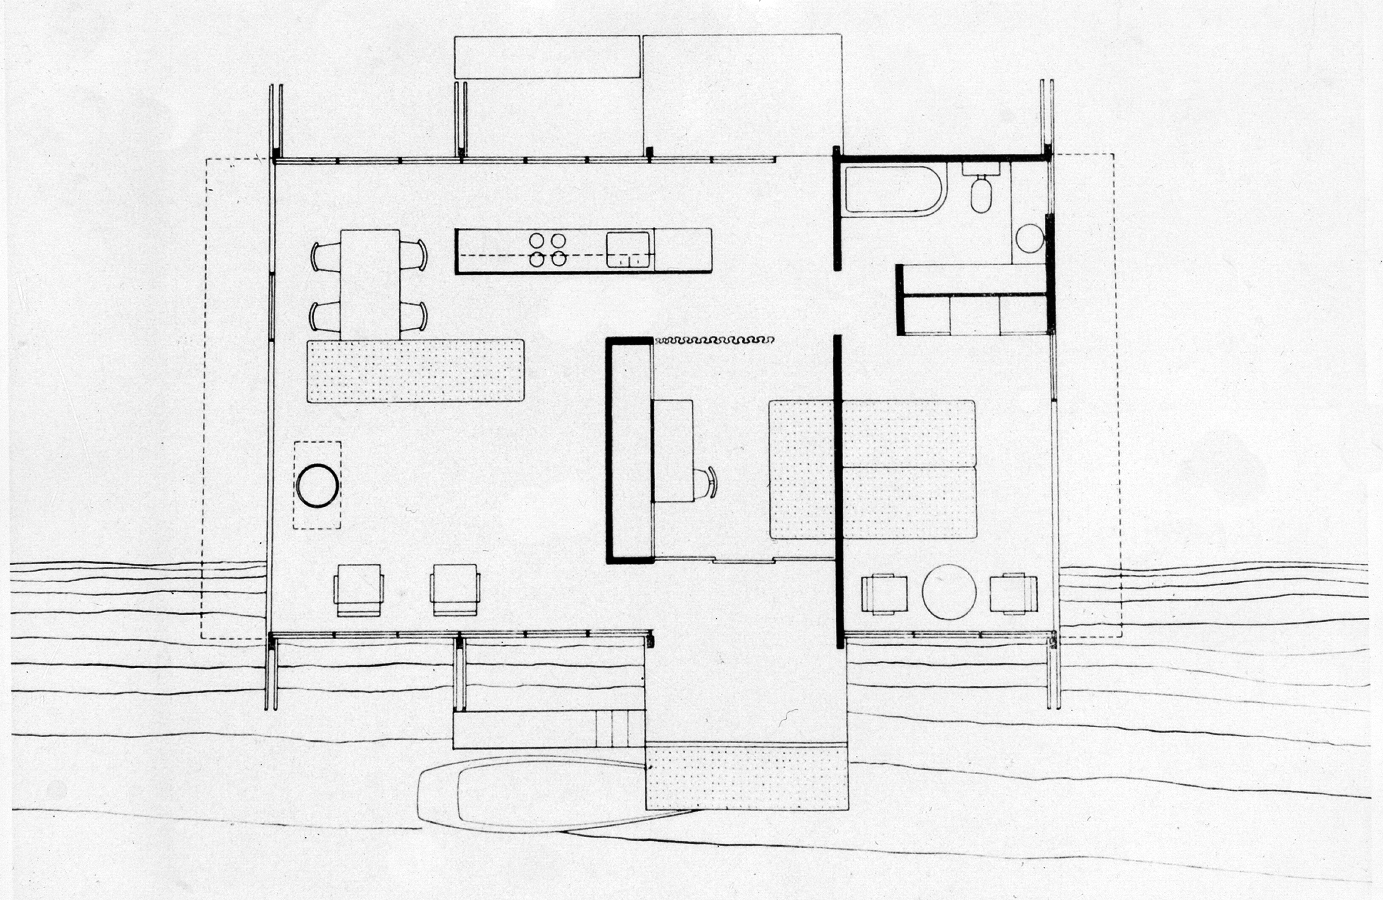 Cocoon house (Healy Guest House), Siesta Key, Florida. Floor Plan.